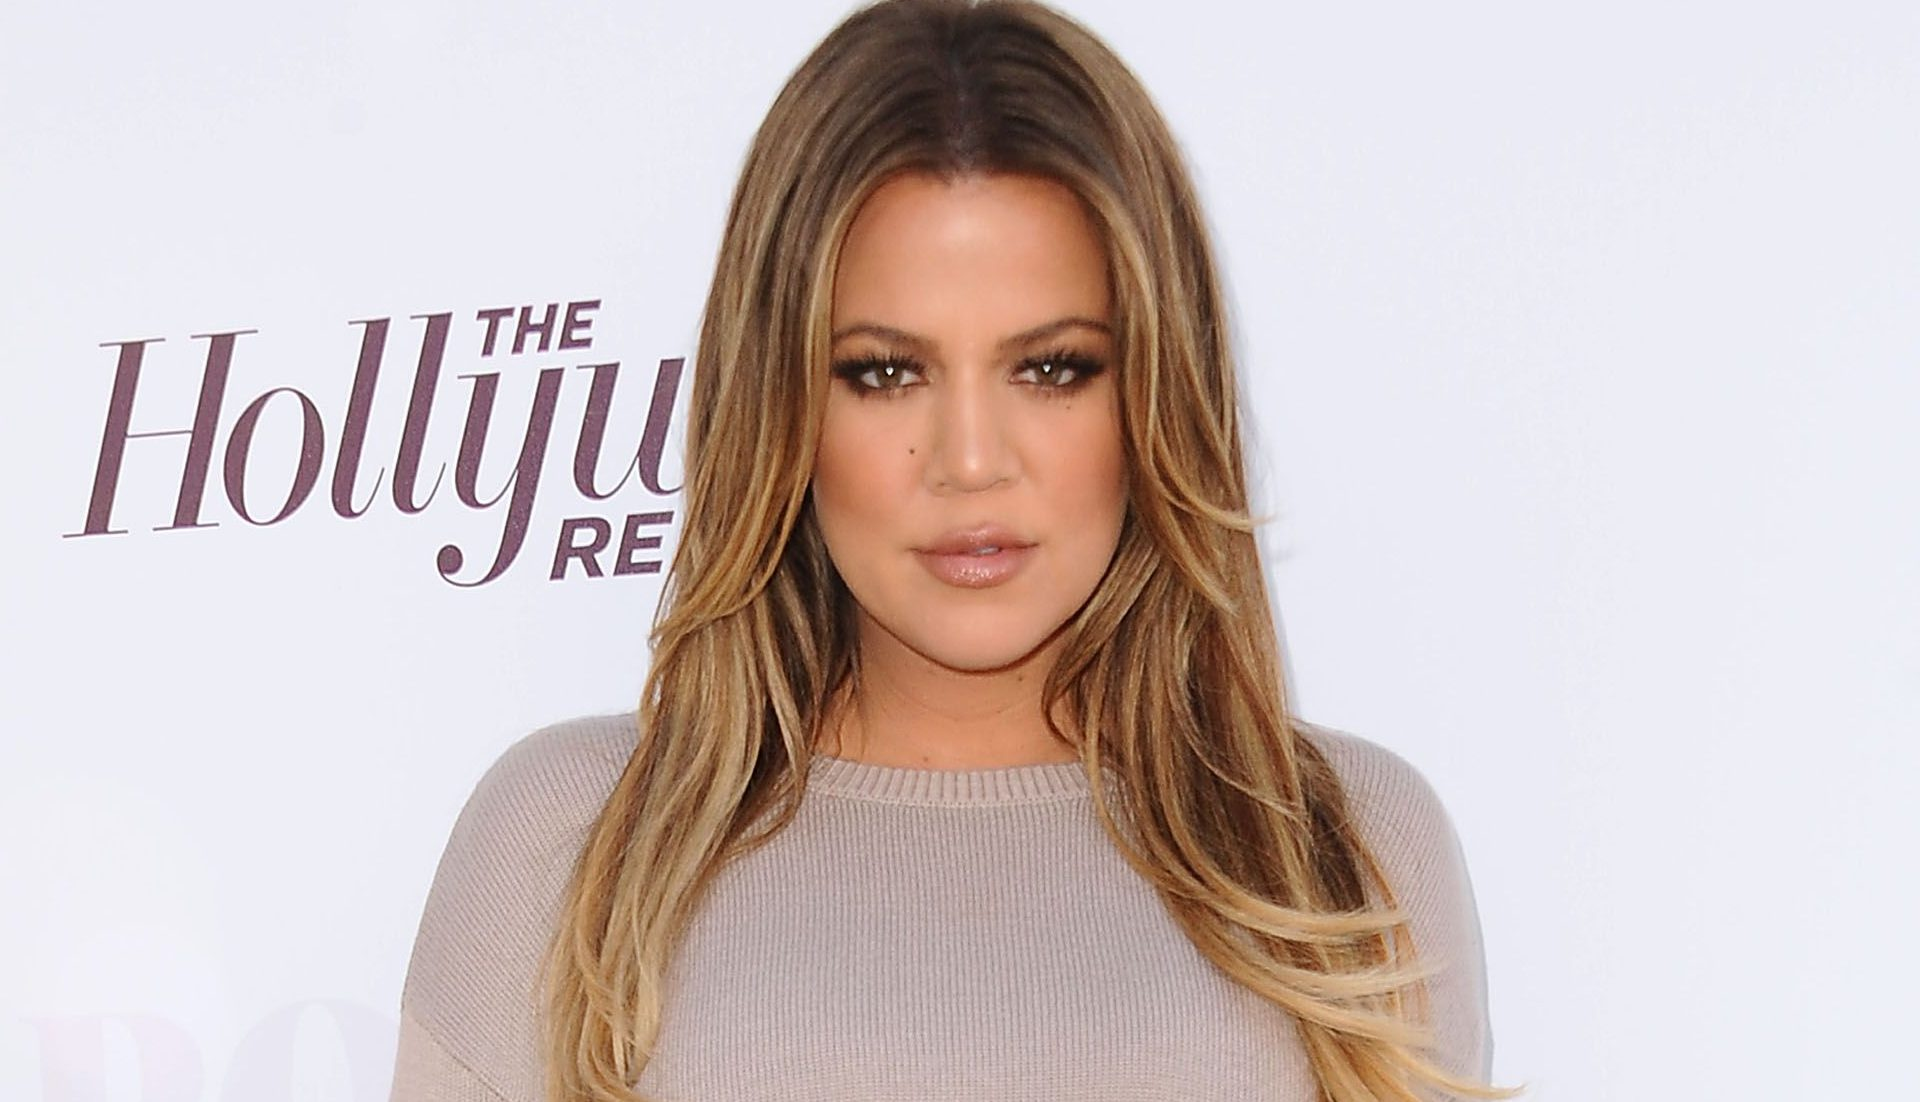 Khloe Kardashian hits back at fans who say she's lost 'too much weight' so quickly after giving birth